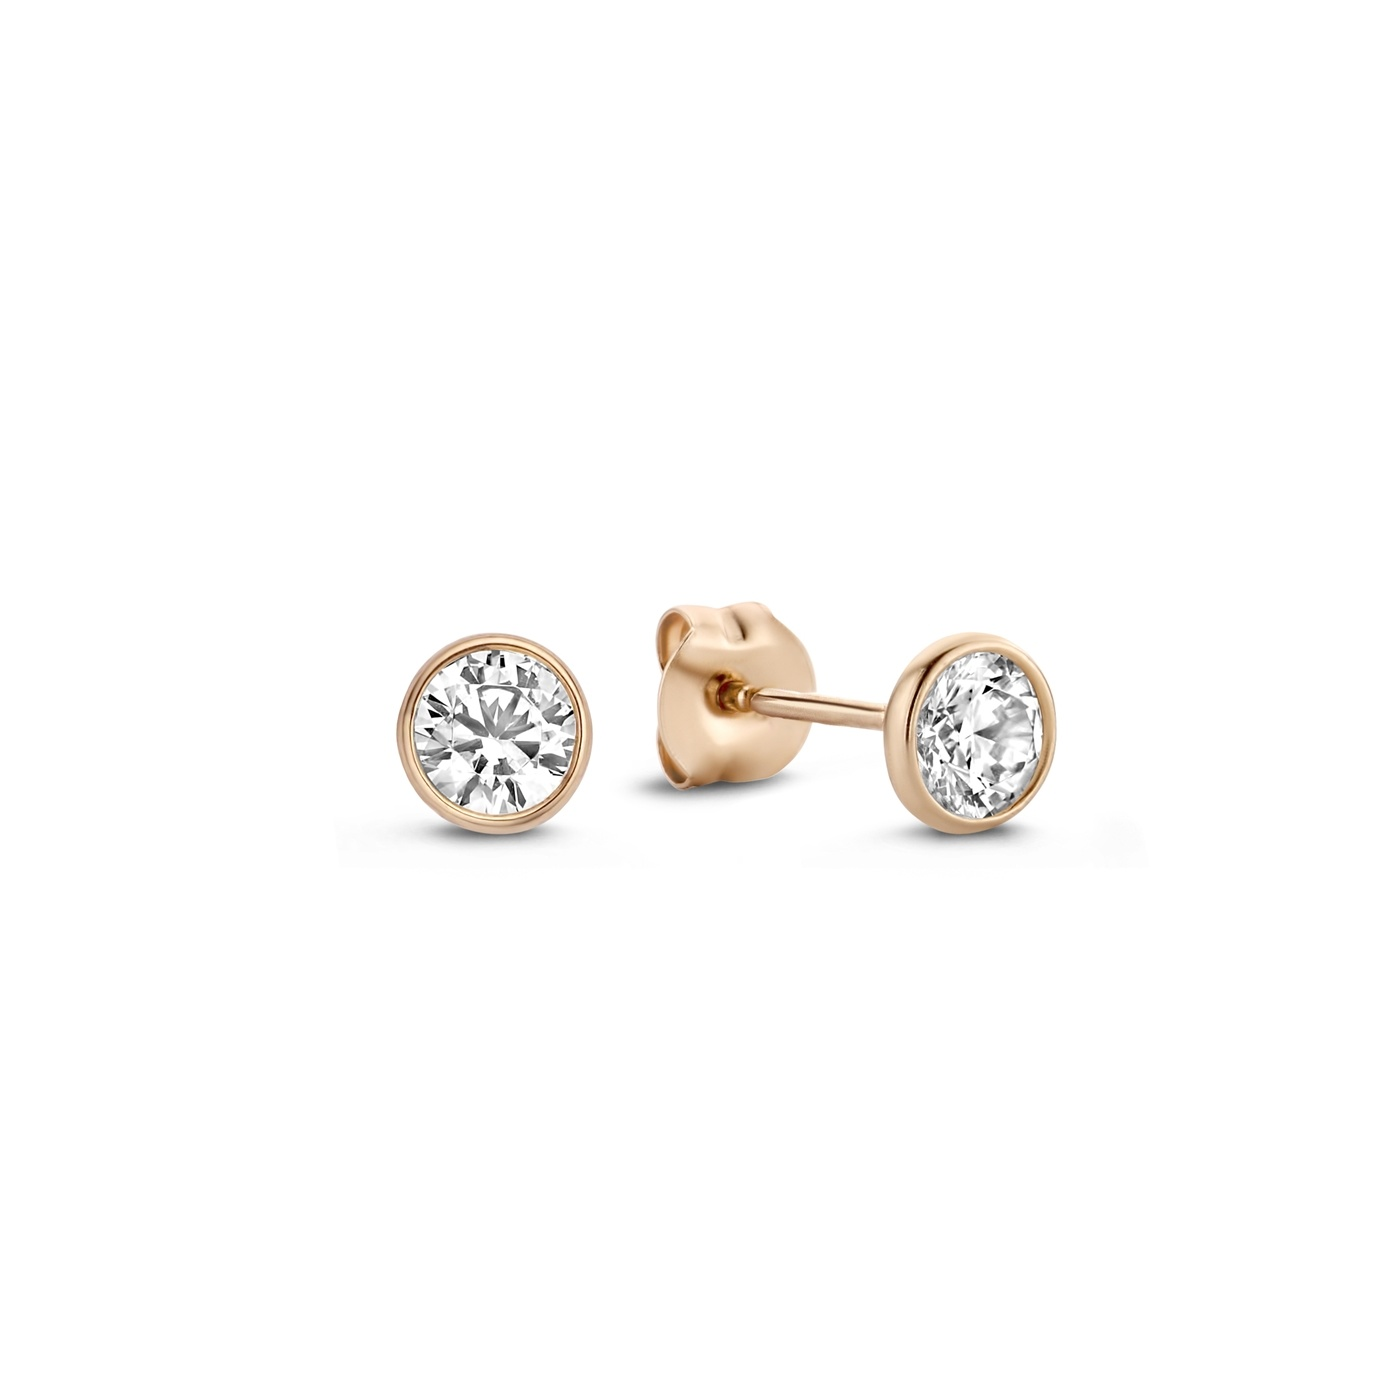 Isabel Bernard La Concorde Loane 14 karat rose gold ear studs with zirconia